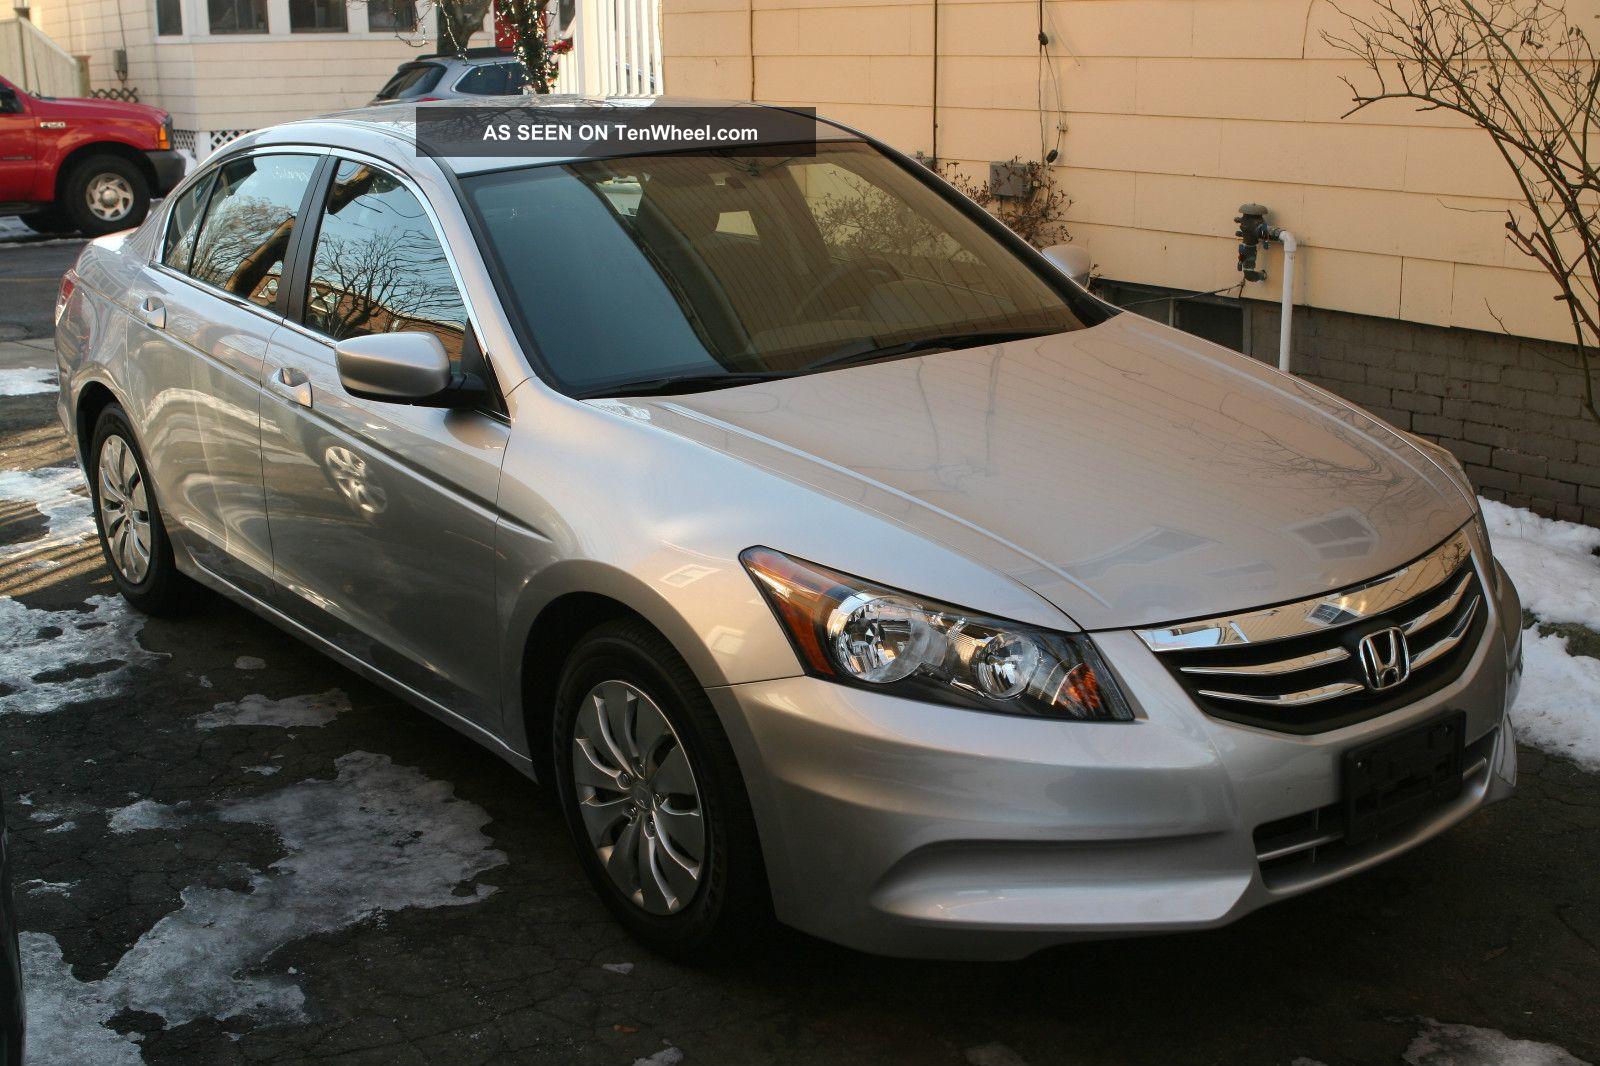 2011 Honda Accord Lx Sedan 4 Door 2 4l